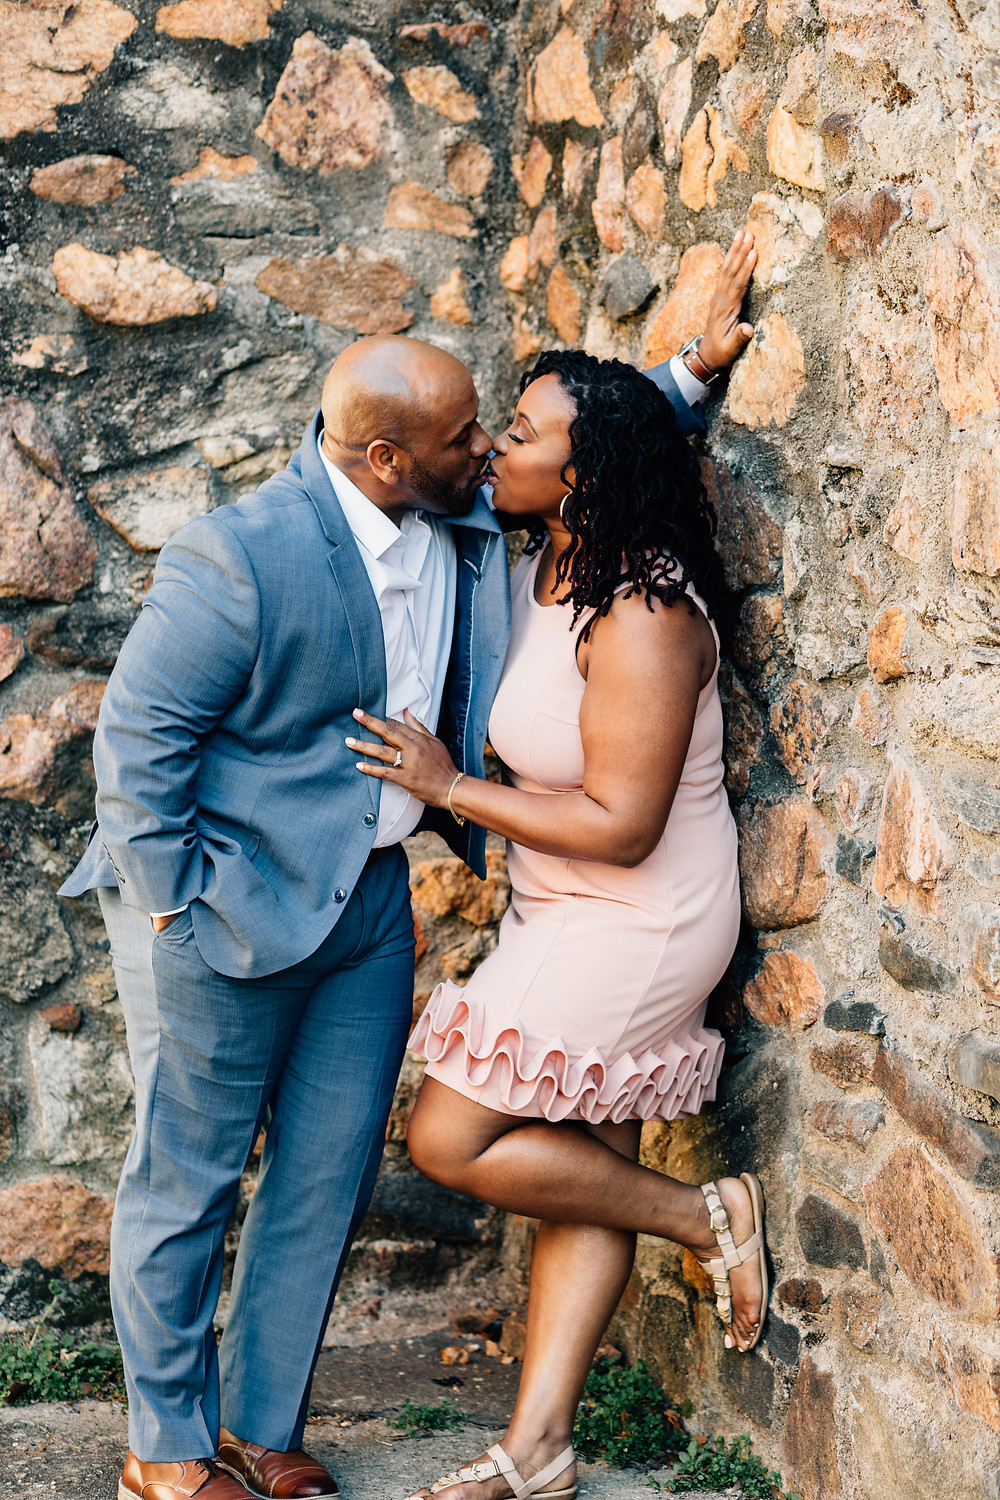 Romantic engagement picture against stone wall